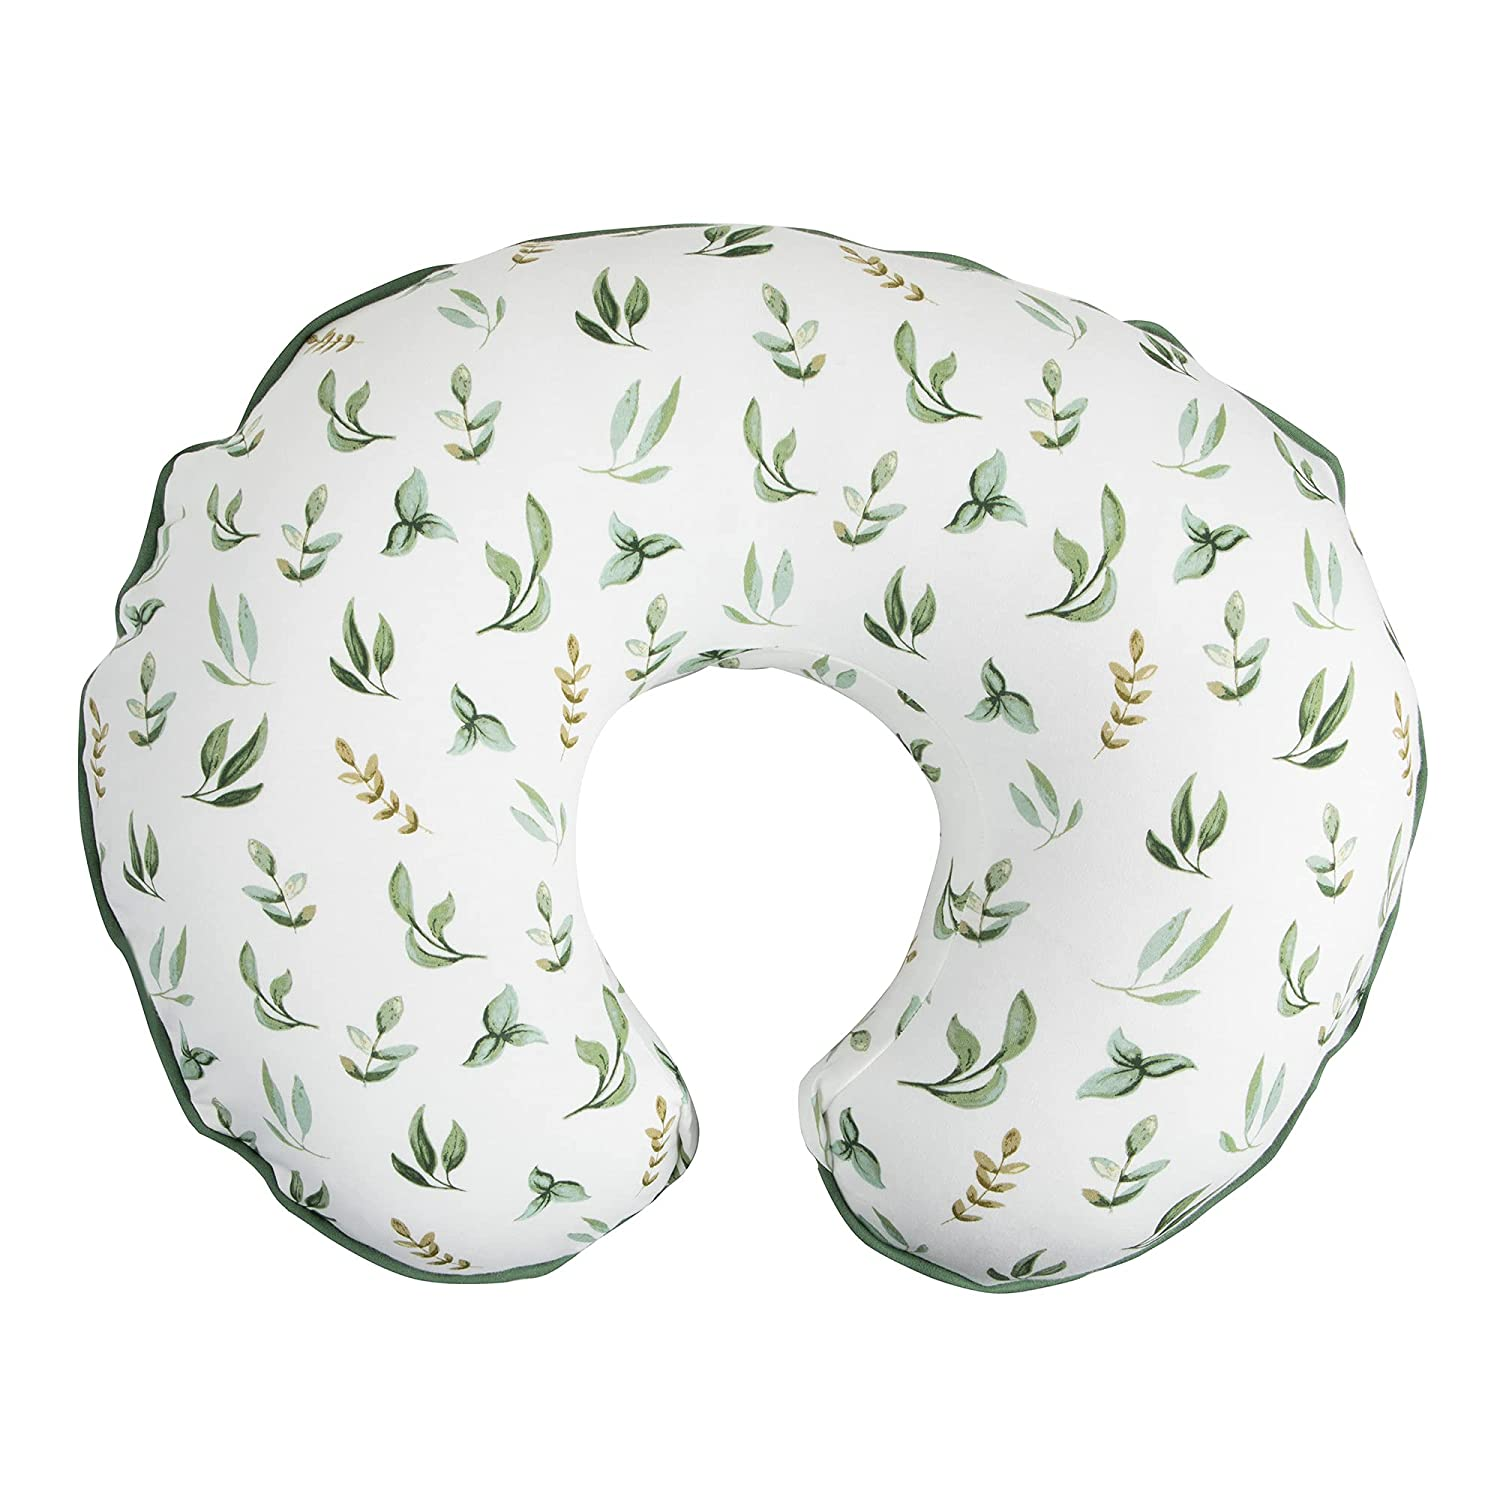 Boppy Nursing Pillow Cover –Organic Fabric   Green Little Leaves Side and Sage Dots Side   Organic Cotton Fabric   Fits Boppy Bare Naked, Original and Luxe Breastfeeding Pillow   Awake Time Only